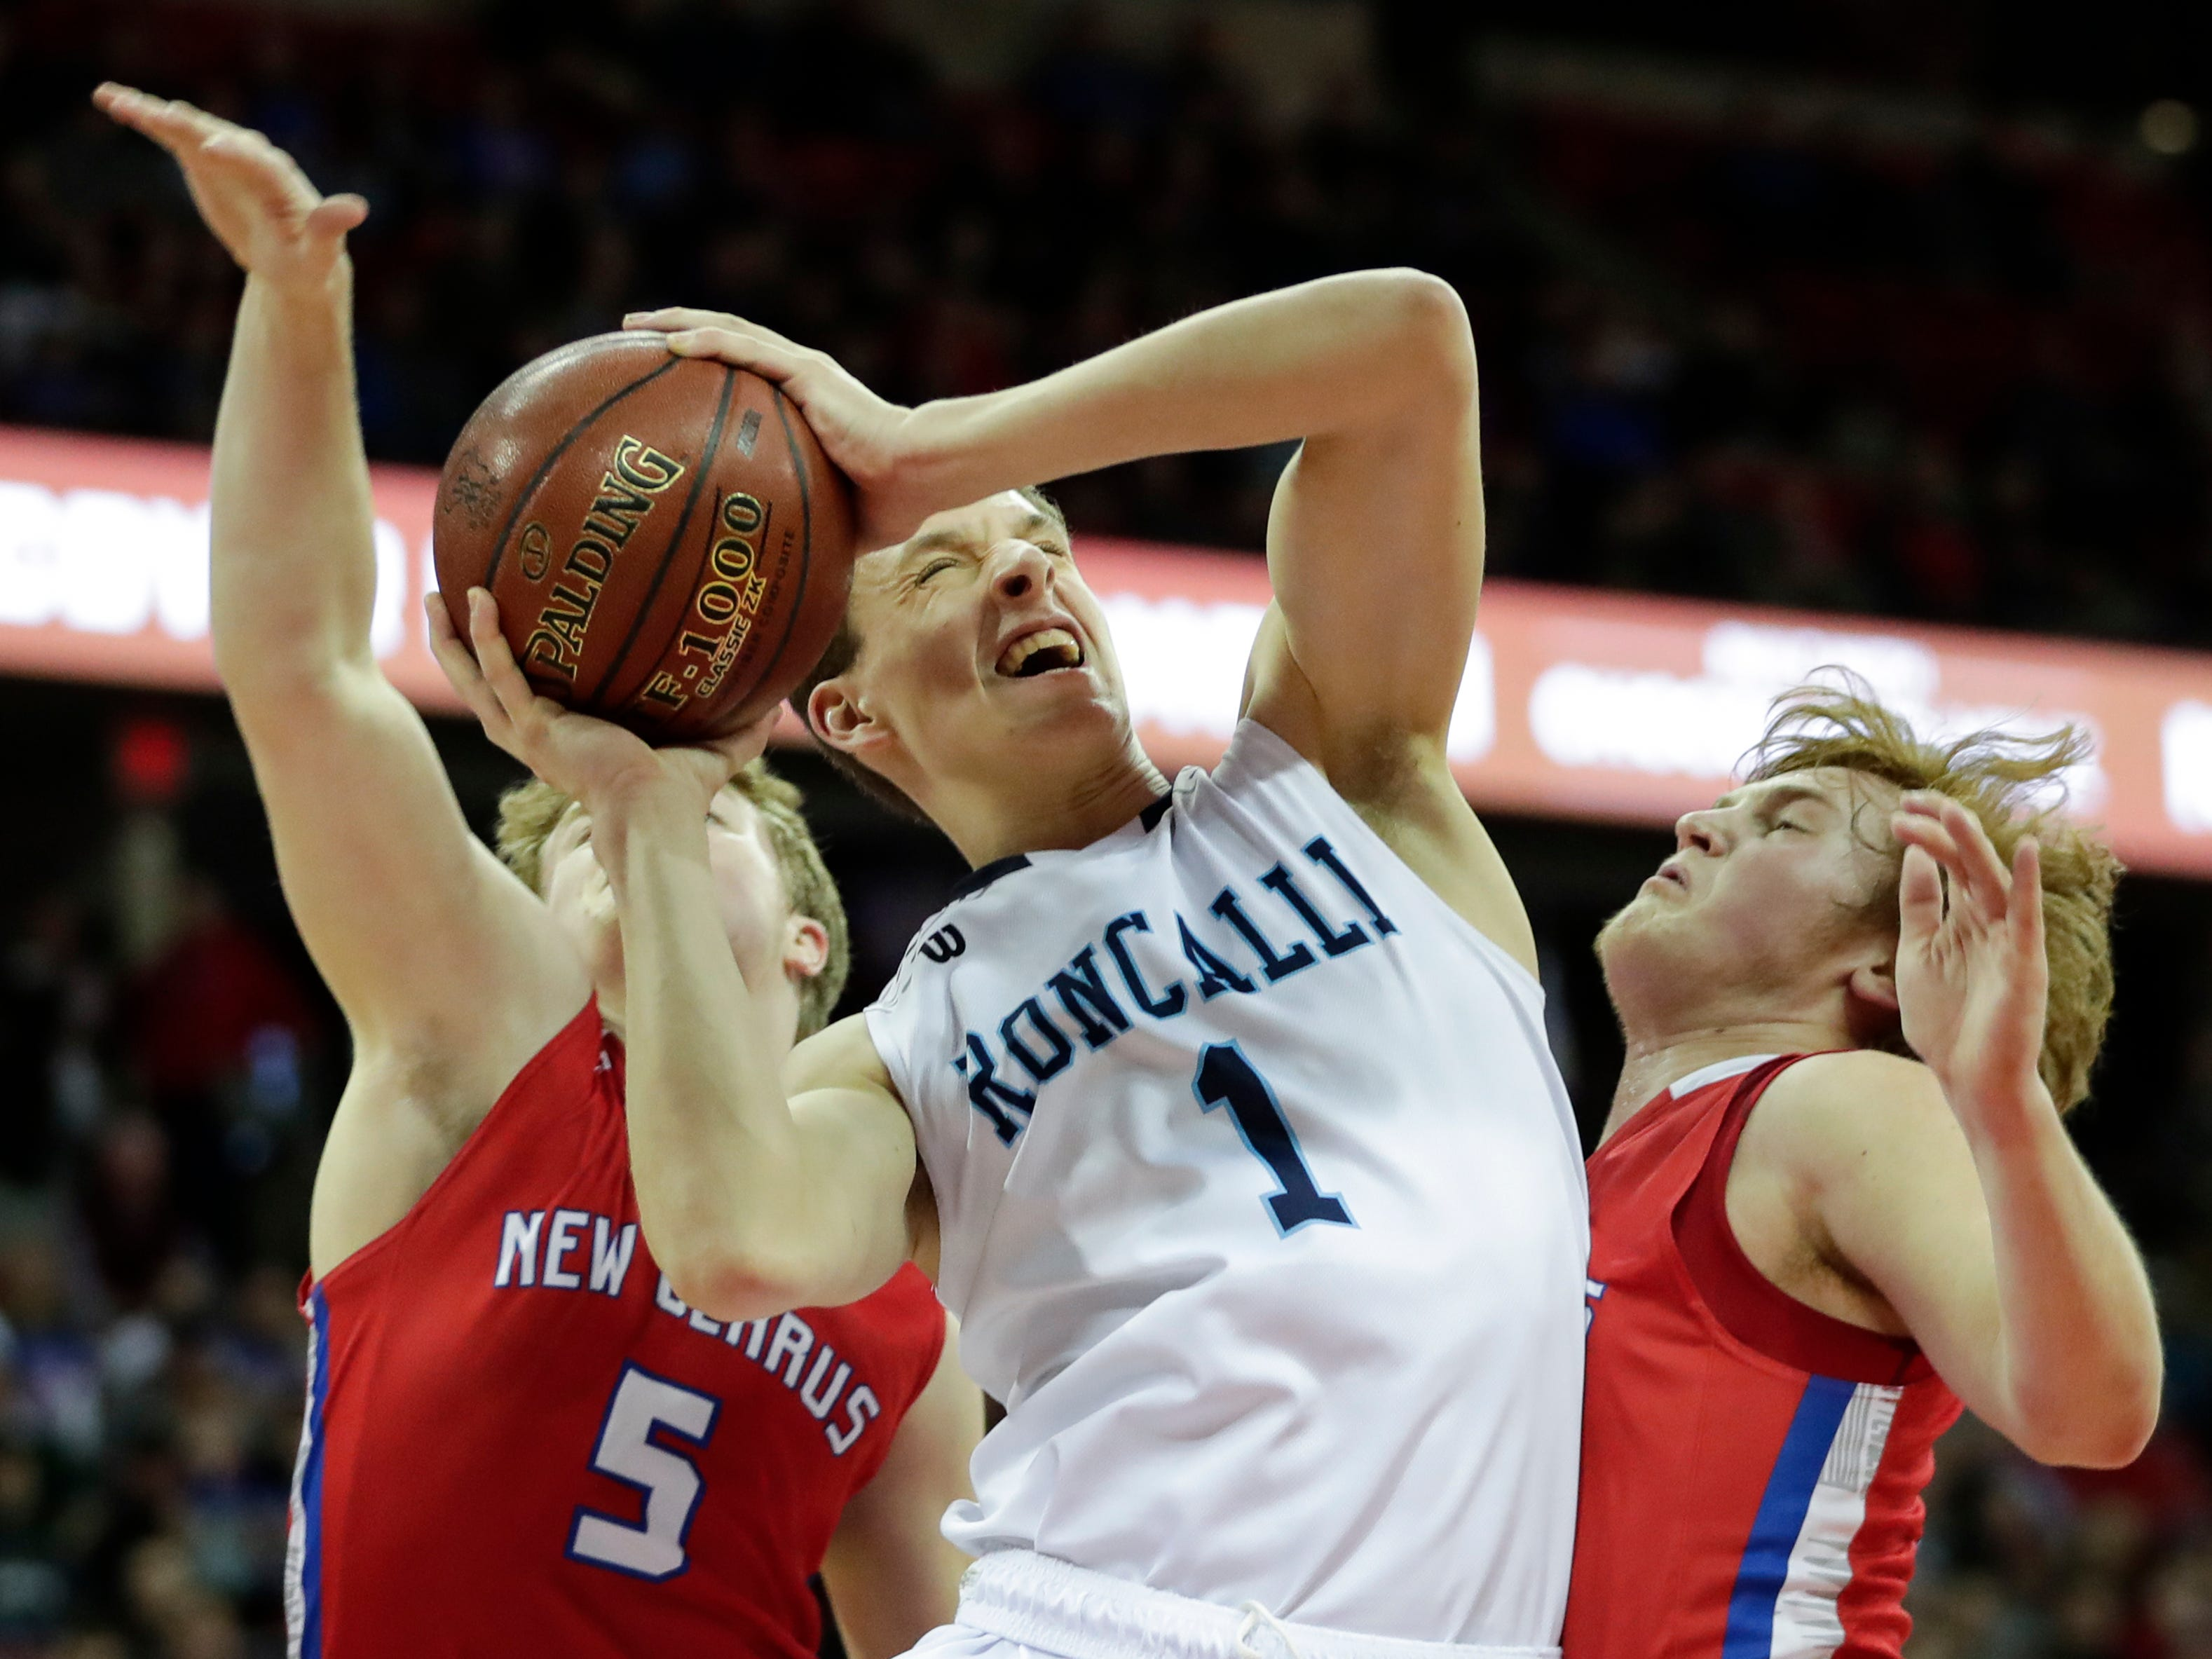 Roncalli High School's Daniel Burgarino (1) goes up for a shot against New Glarus High School during their WIAA Division 4 boys basketball state semifinal at the Kohl Center Thursday, March 14, 2019, in Madison, Wis.